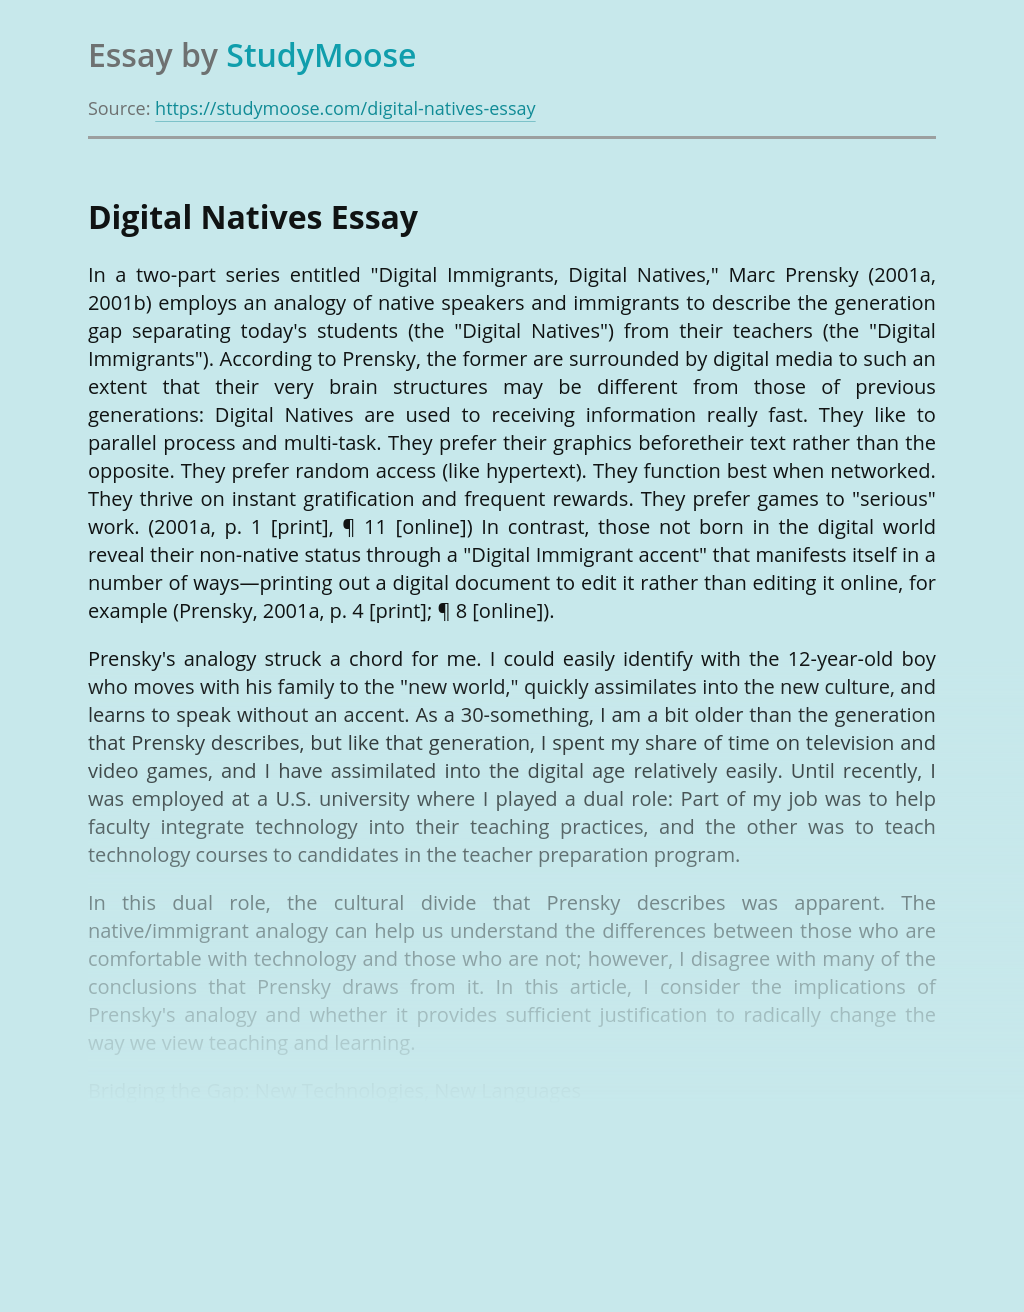 Which Generation Are Digital Natives?